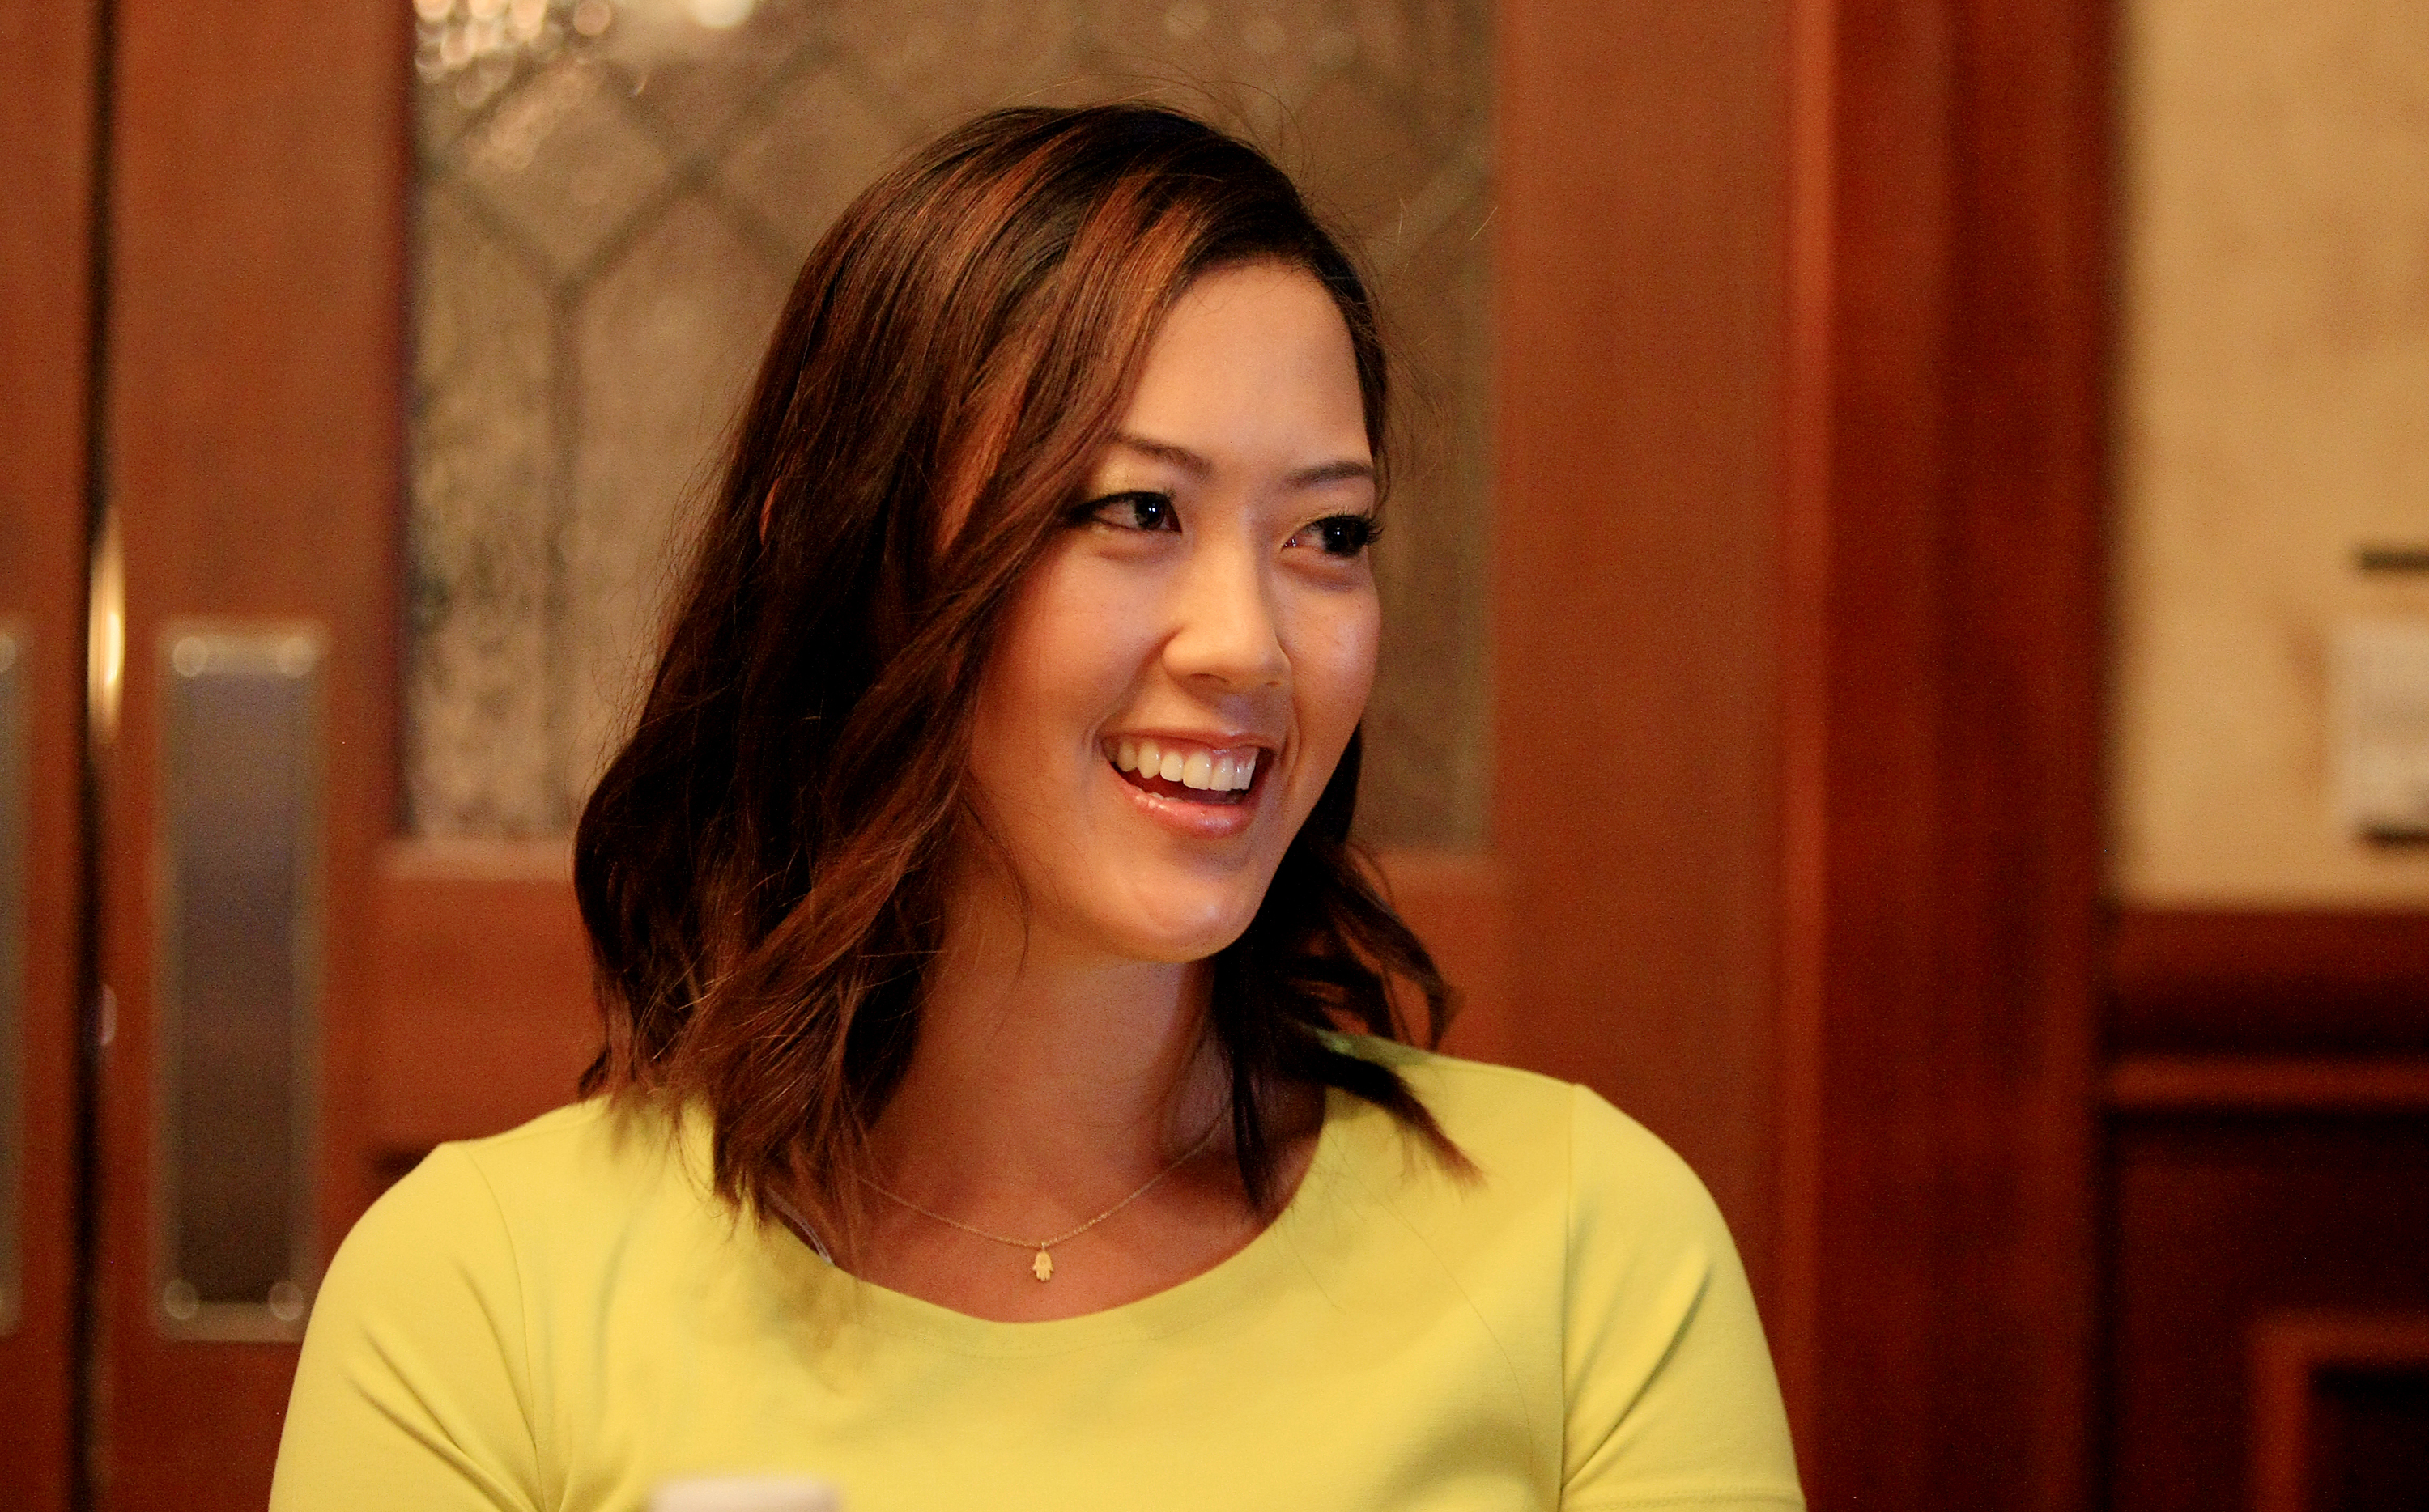 yanzhou asian singles Yanzhou's best 100% free asian girls dating site meet thousands of single asian women in yanzhou with mingle2's free personal ads and chat rooms our network of asian women in yanzhou is the perfect place to make friends or find an asian girlfriend in yanzhou find hundreds of single fujian asian females already online finding love and friendship in yanzhou.